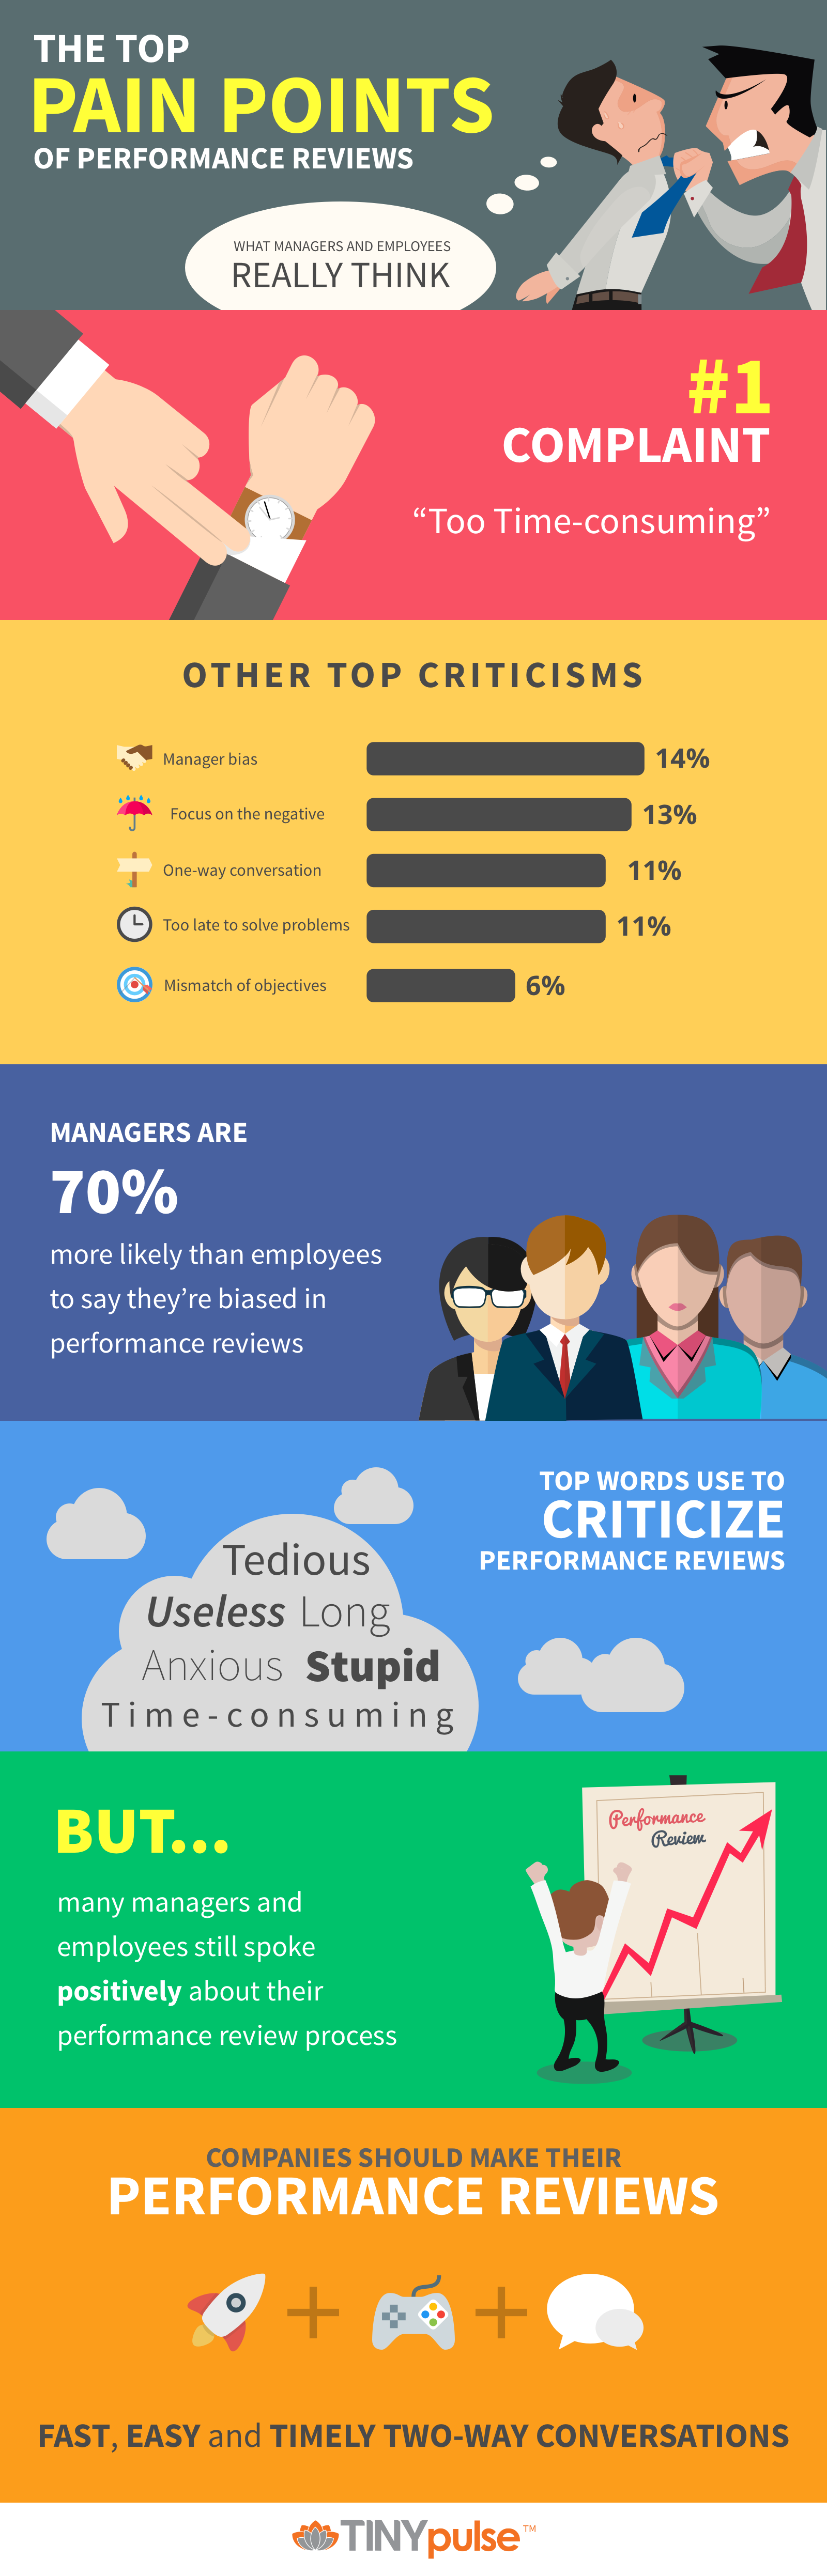 The Truth Behind Performance Reviews Infographic by TINYpulse